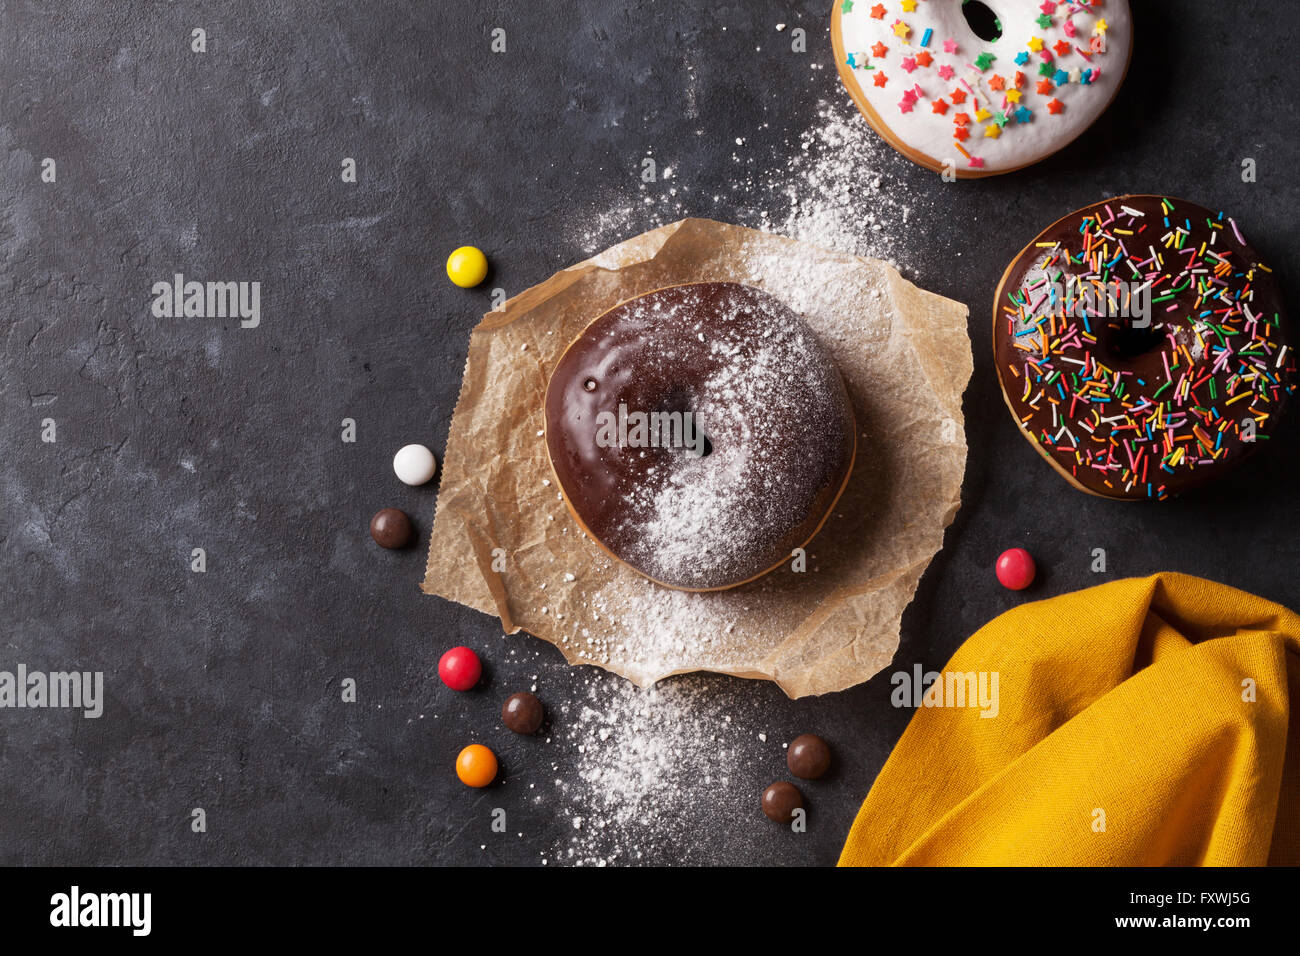 Colorful donuts on stone table. Top view with copy space - Stock Image